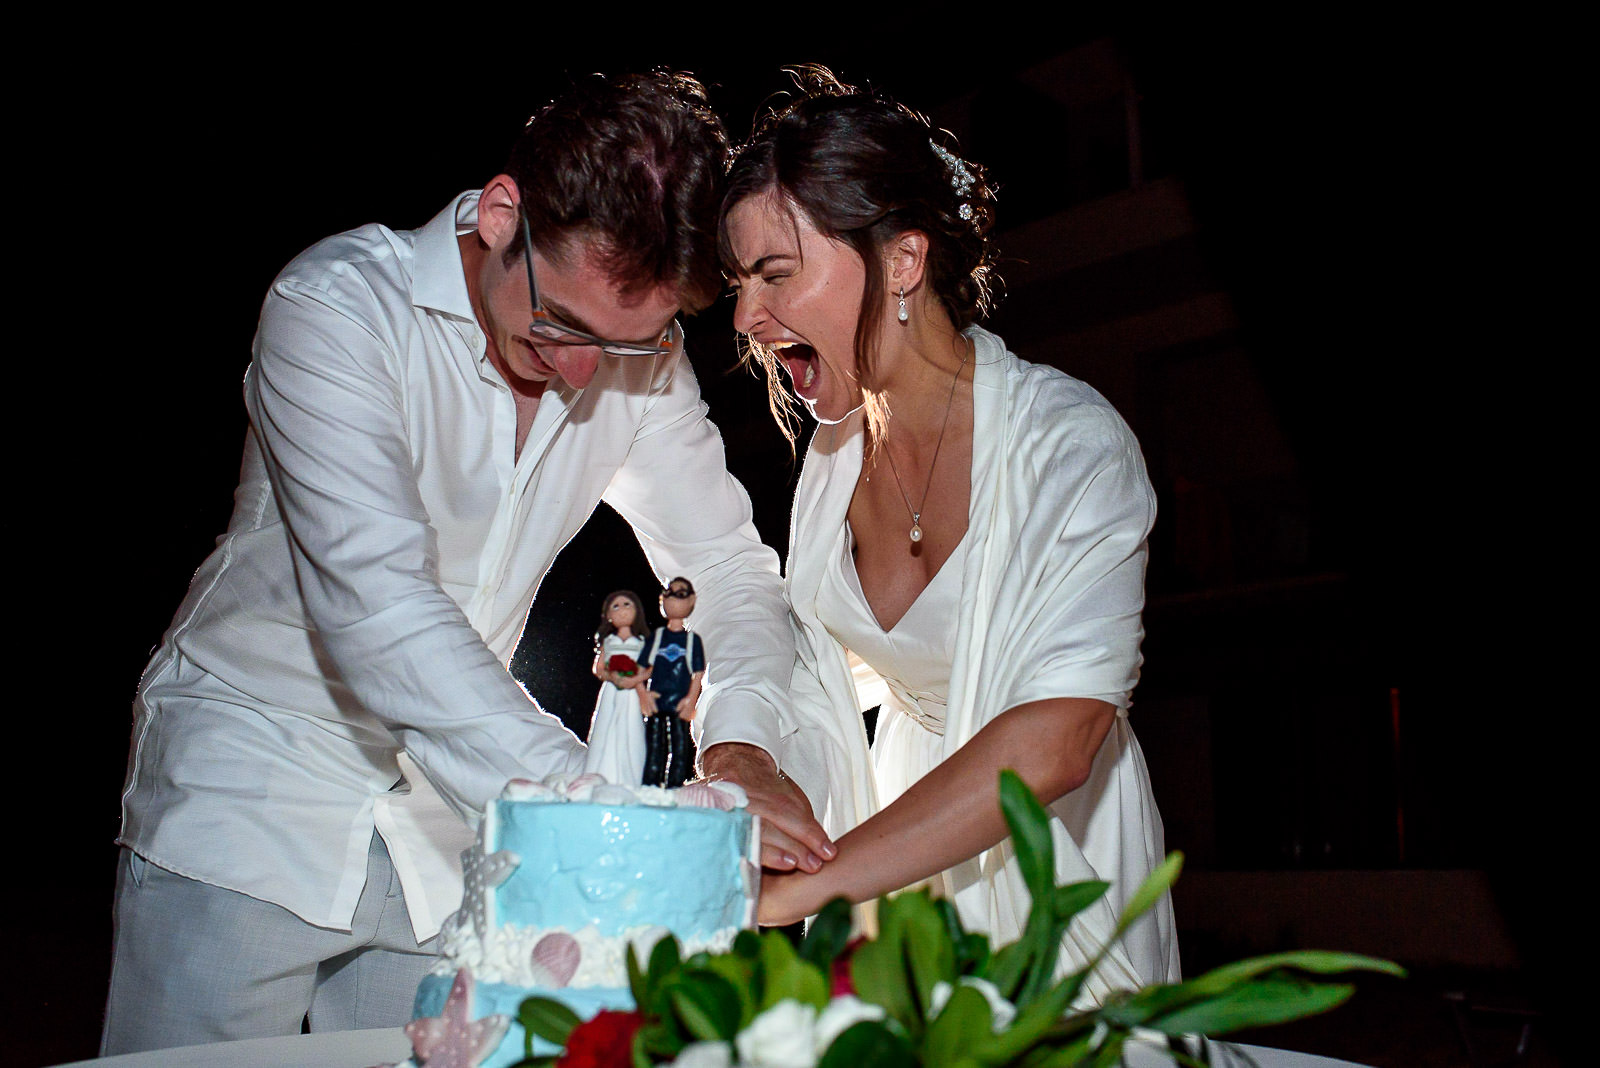 couple cutting the cake at a fun beach wedding